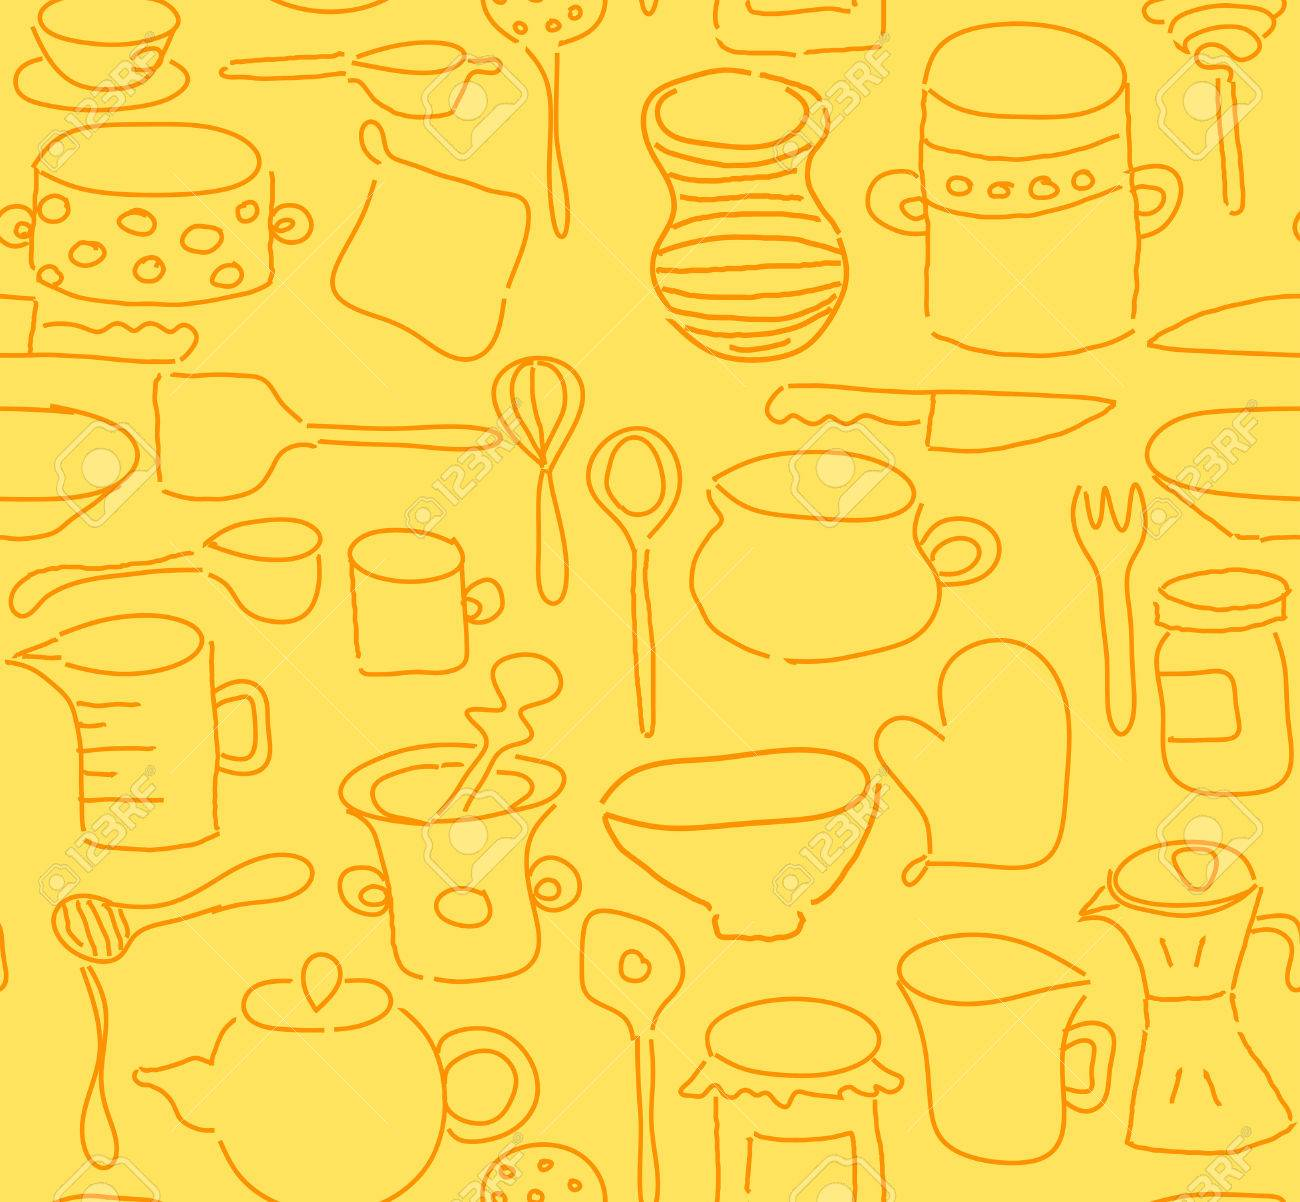 Seamless Kitchen Utensils Doodle Royalty Free Cliparts Vectors And